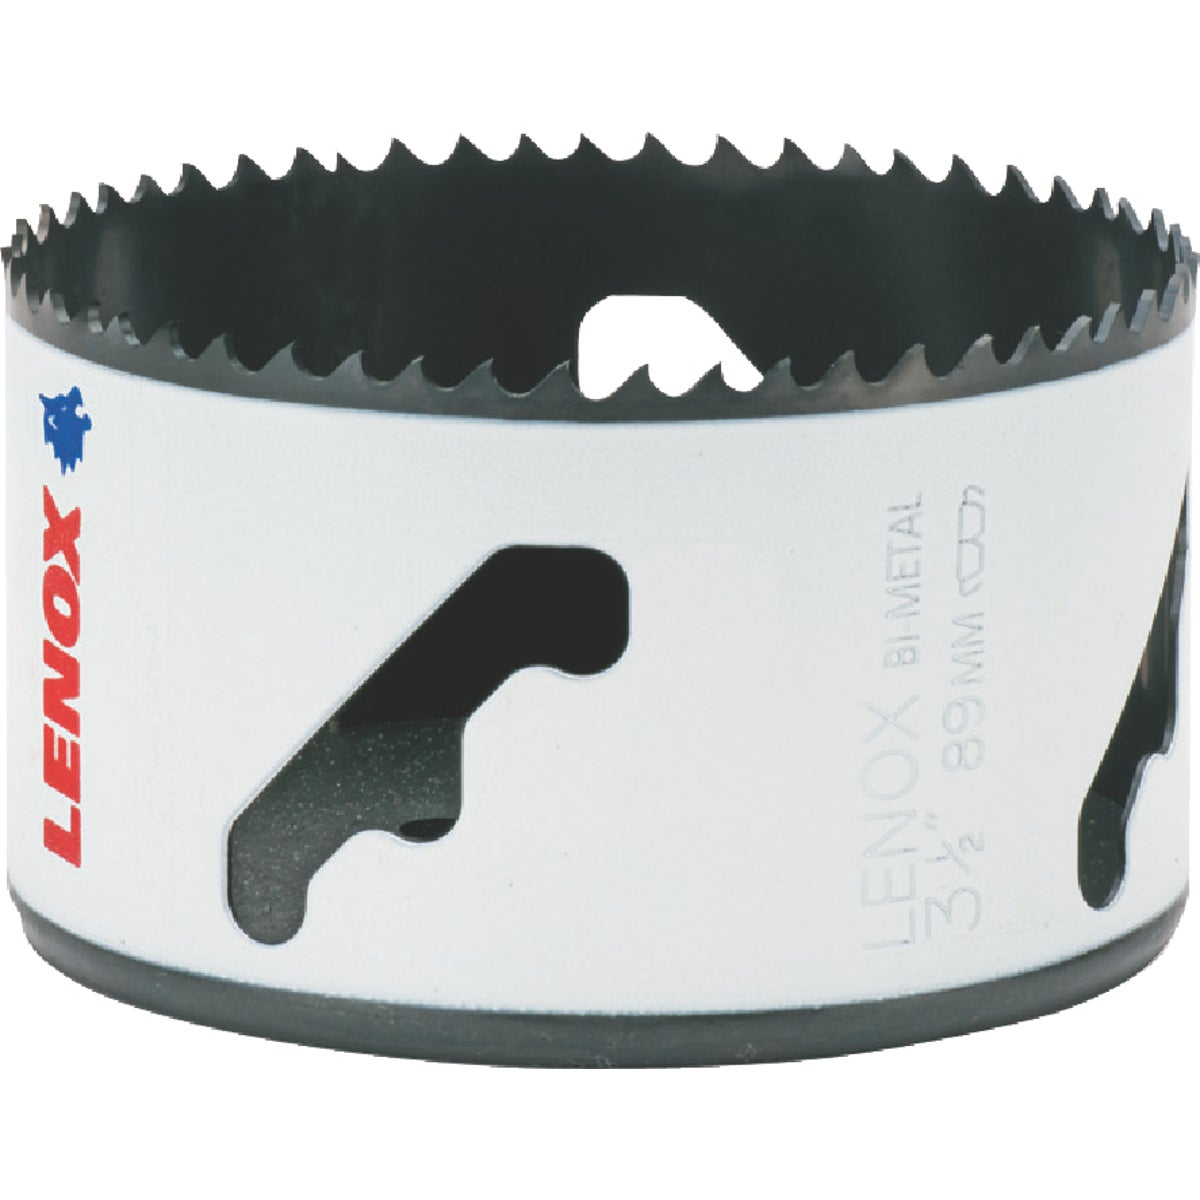 "3-1/2"" HOLE SAW - 1772012 by Lenox"